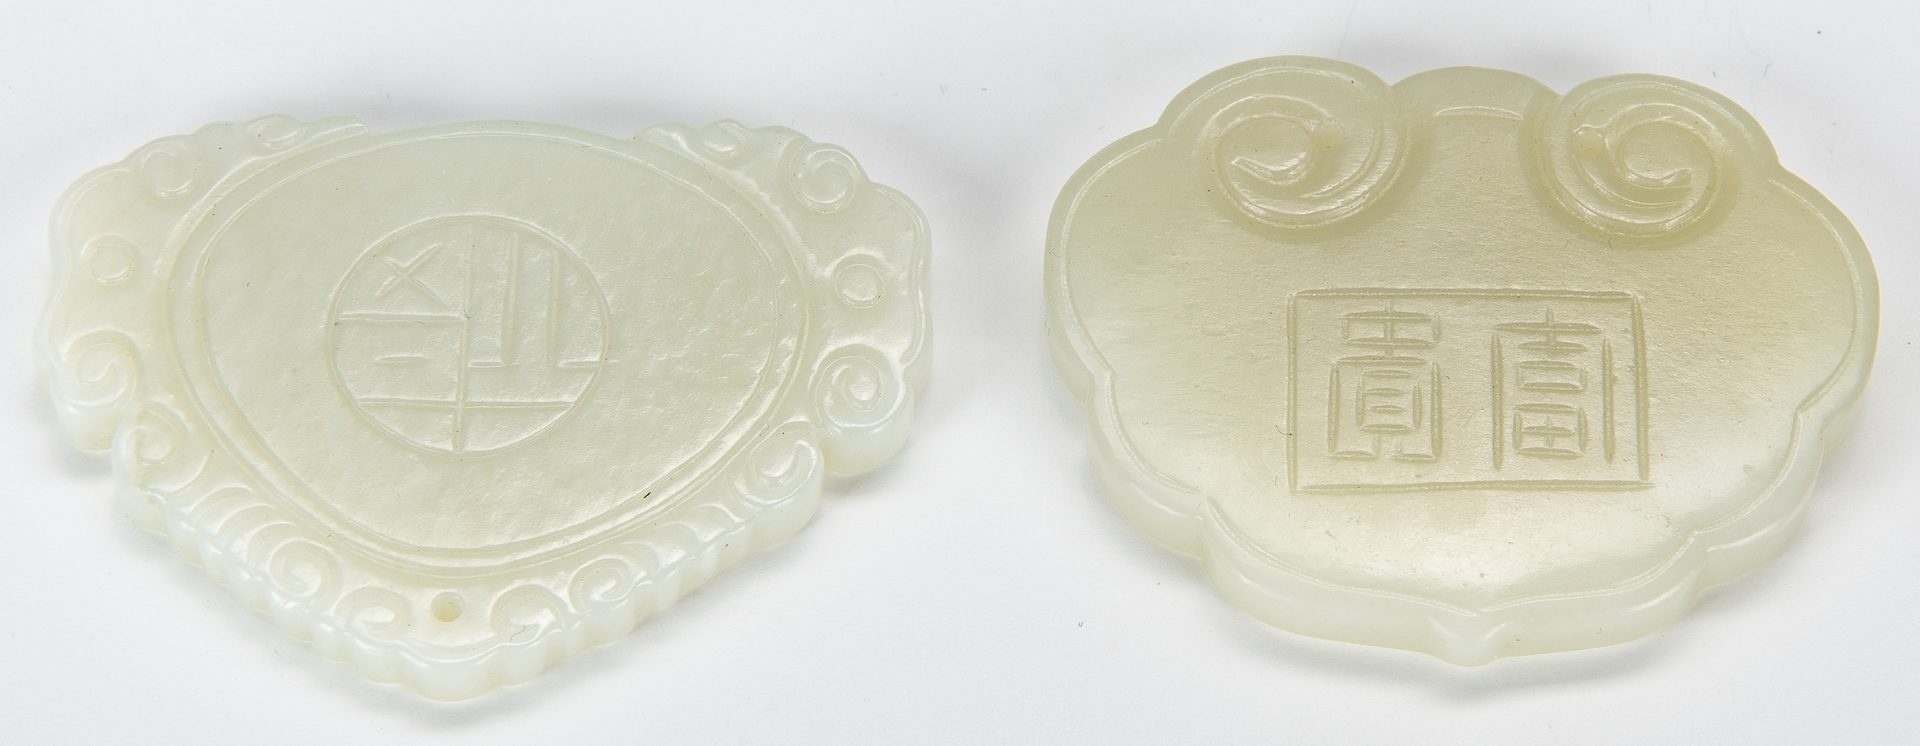 Lot 452: 5 Chinese Jade items including 4 plaques & 1 disc